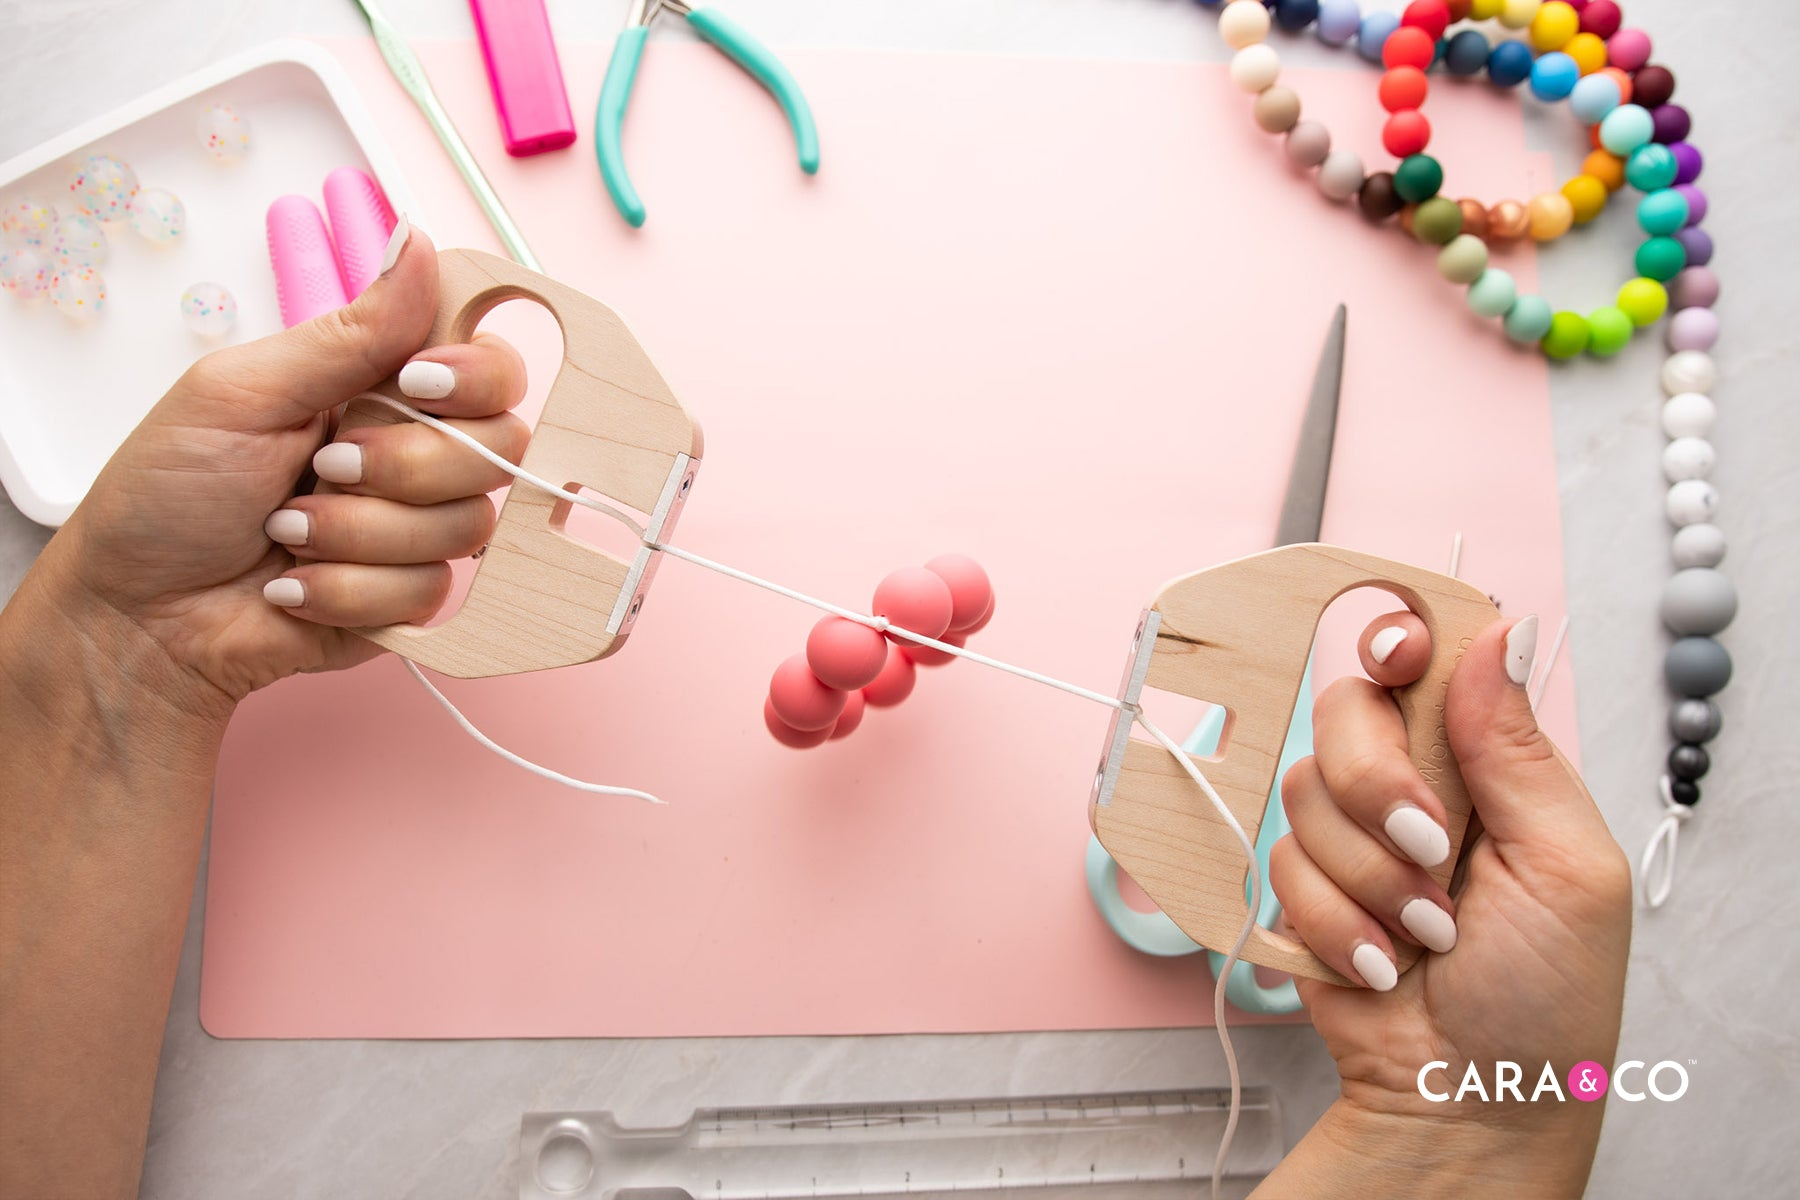 How to be a compliant handmade teething / chewelry business